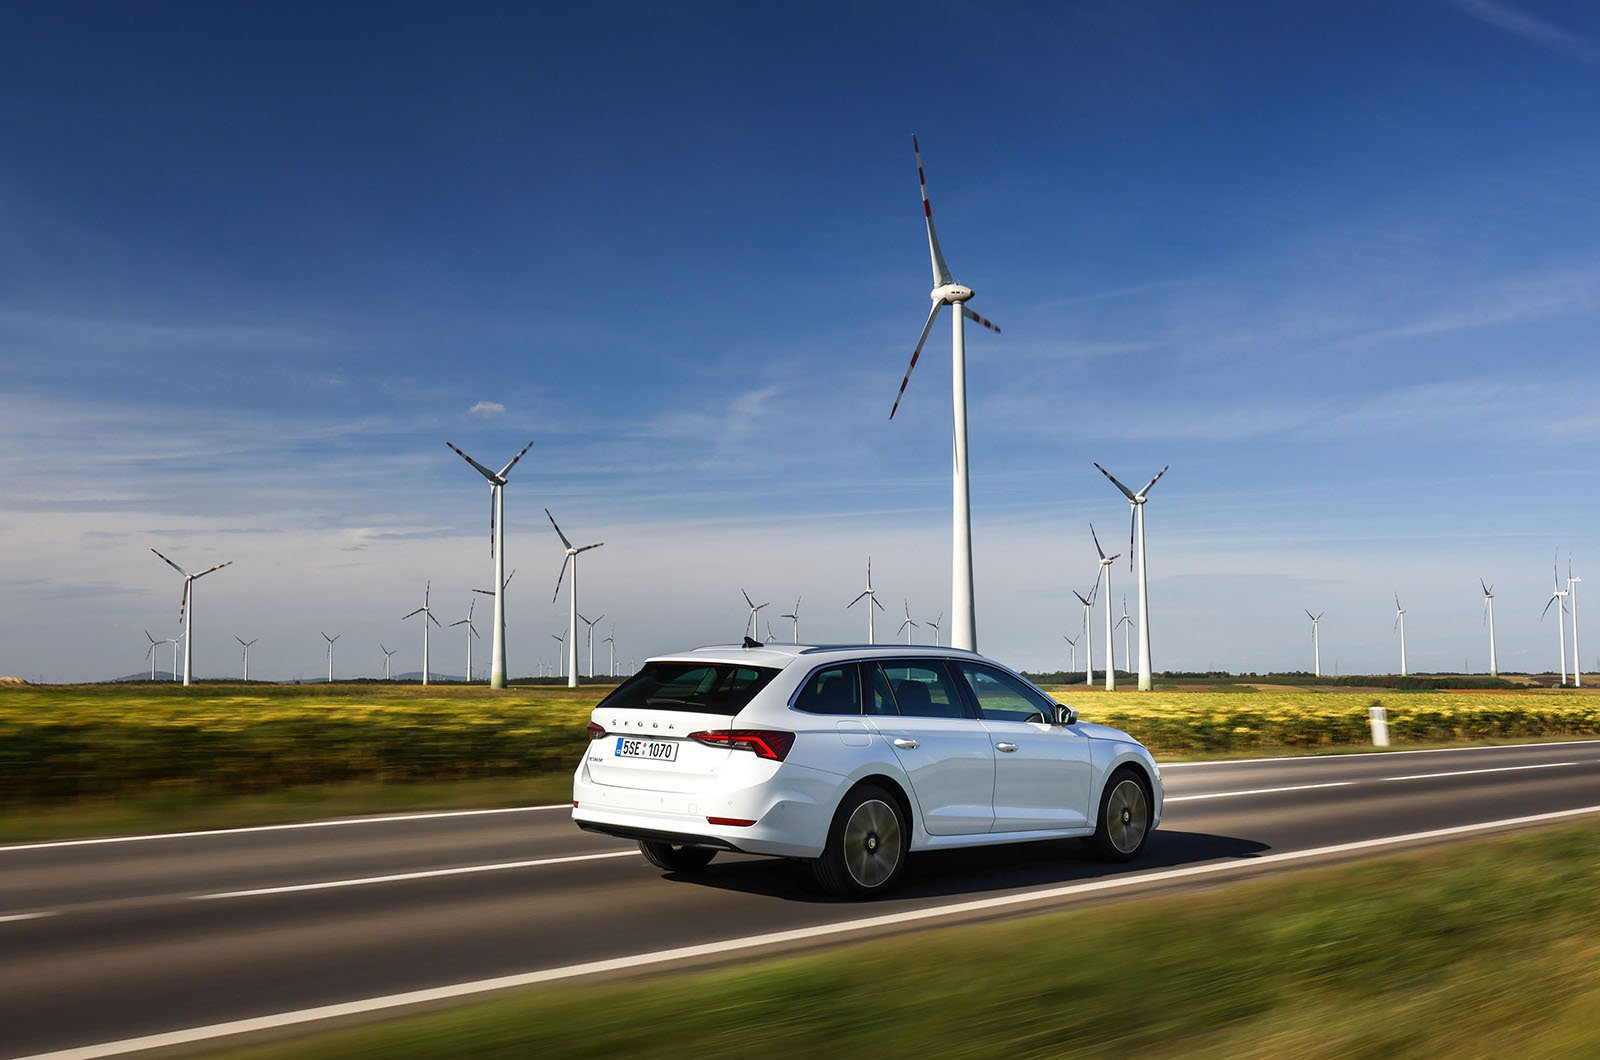 With an advanced tax-friendly plug-in hybrid, and comfort, style and space to match, here's why the Skoda Octavia should be on your shortlist